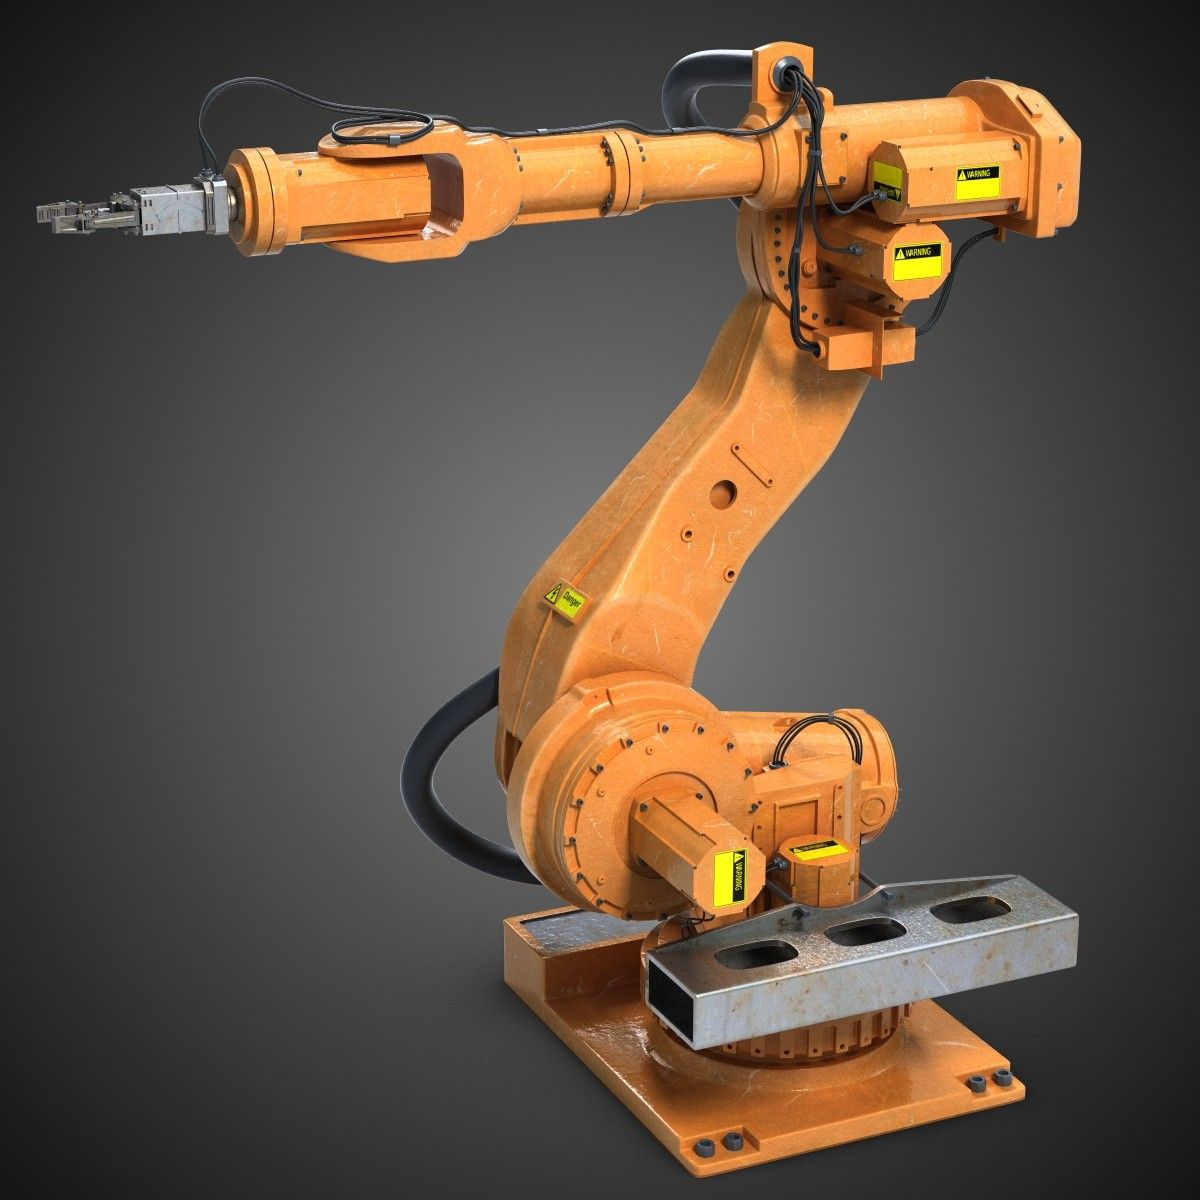 a2ff4cf1cdc79295412544dc3d6b3065 abb robotics industrial robot irb 1200 industrial robots  at reclaimingppi.co